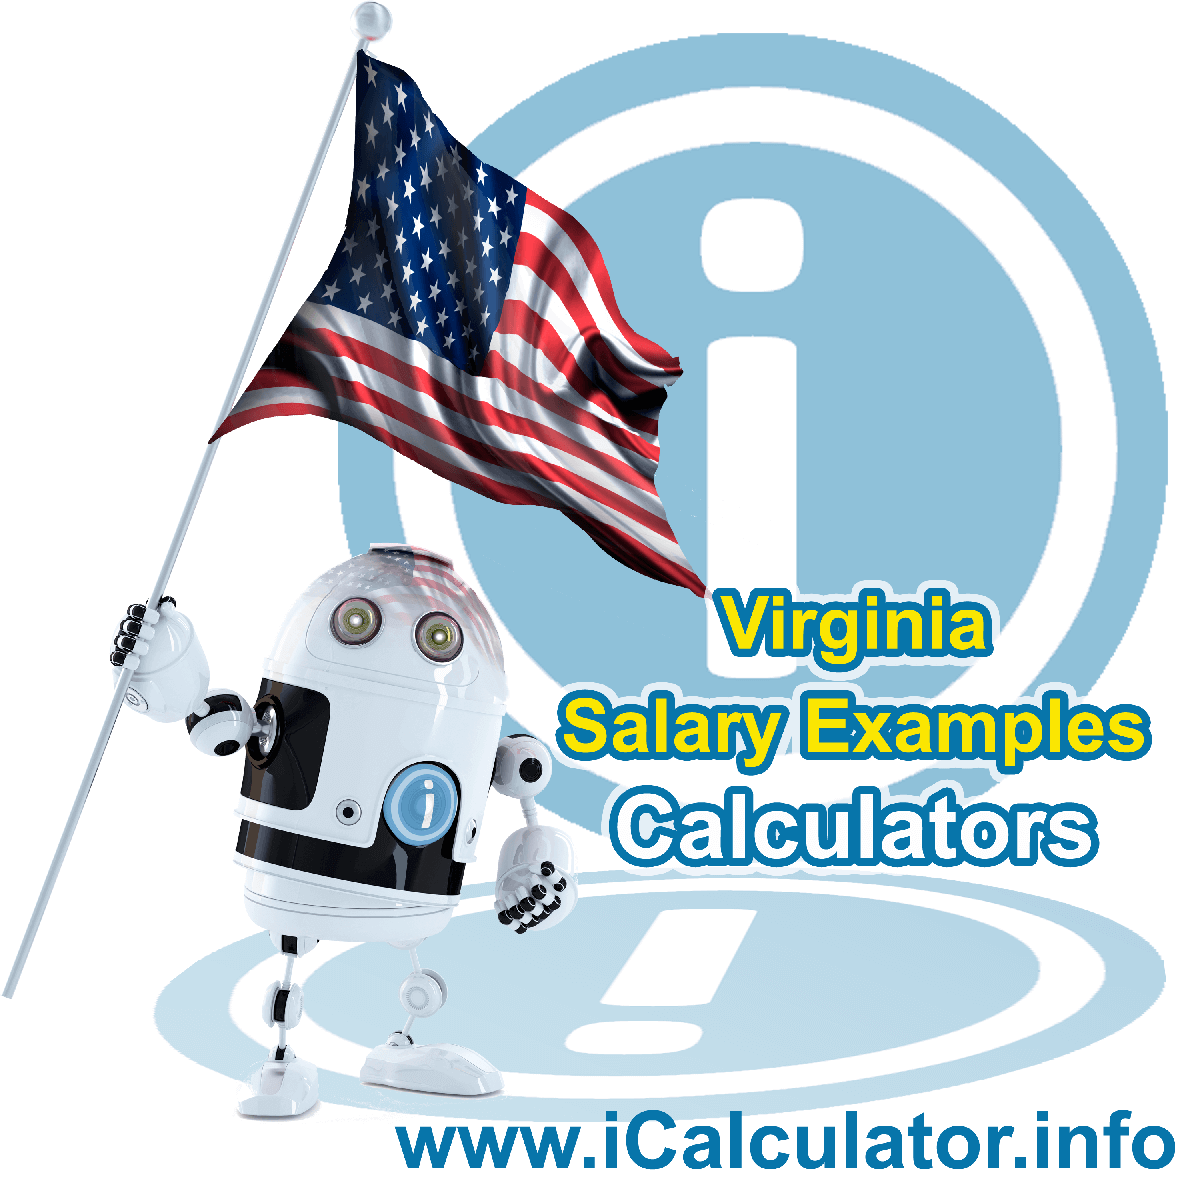 Virginia Salary Example for $135,000.00 in 2020 | iCalculator | $135,000.00 salary example for employee and employer paying Virginia State tincome taxes. Detailed salary after tax calculation including Virginia State Tax, Federal State Tax, Medicare Deductions, Social Security, Capital Gains and other income tax and salary deductions complete with supporting Virginia state tax tables